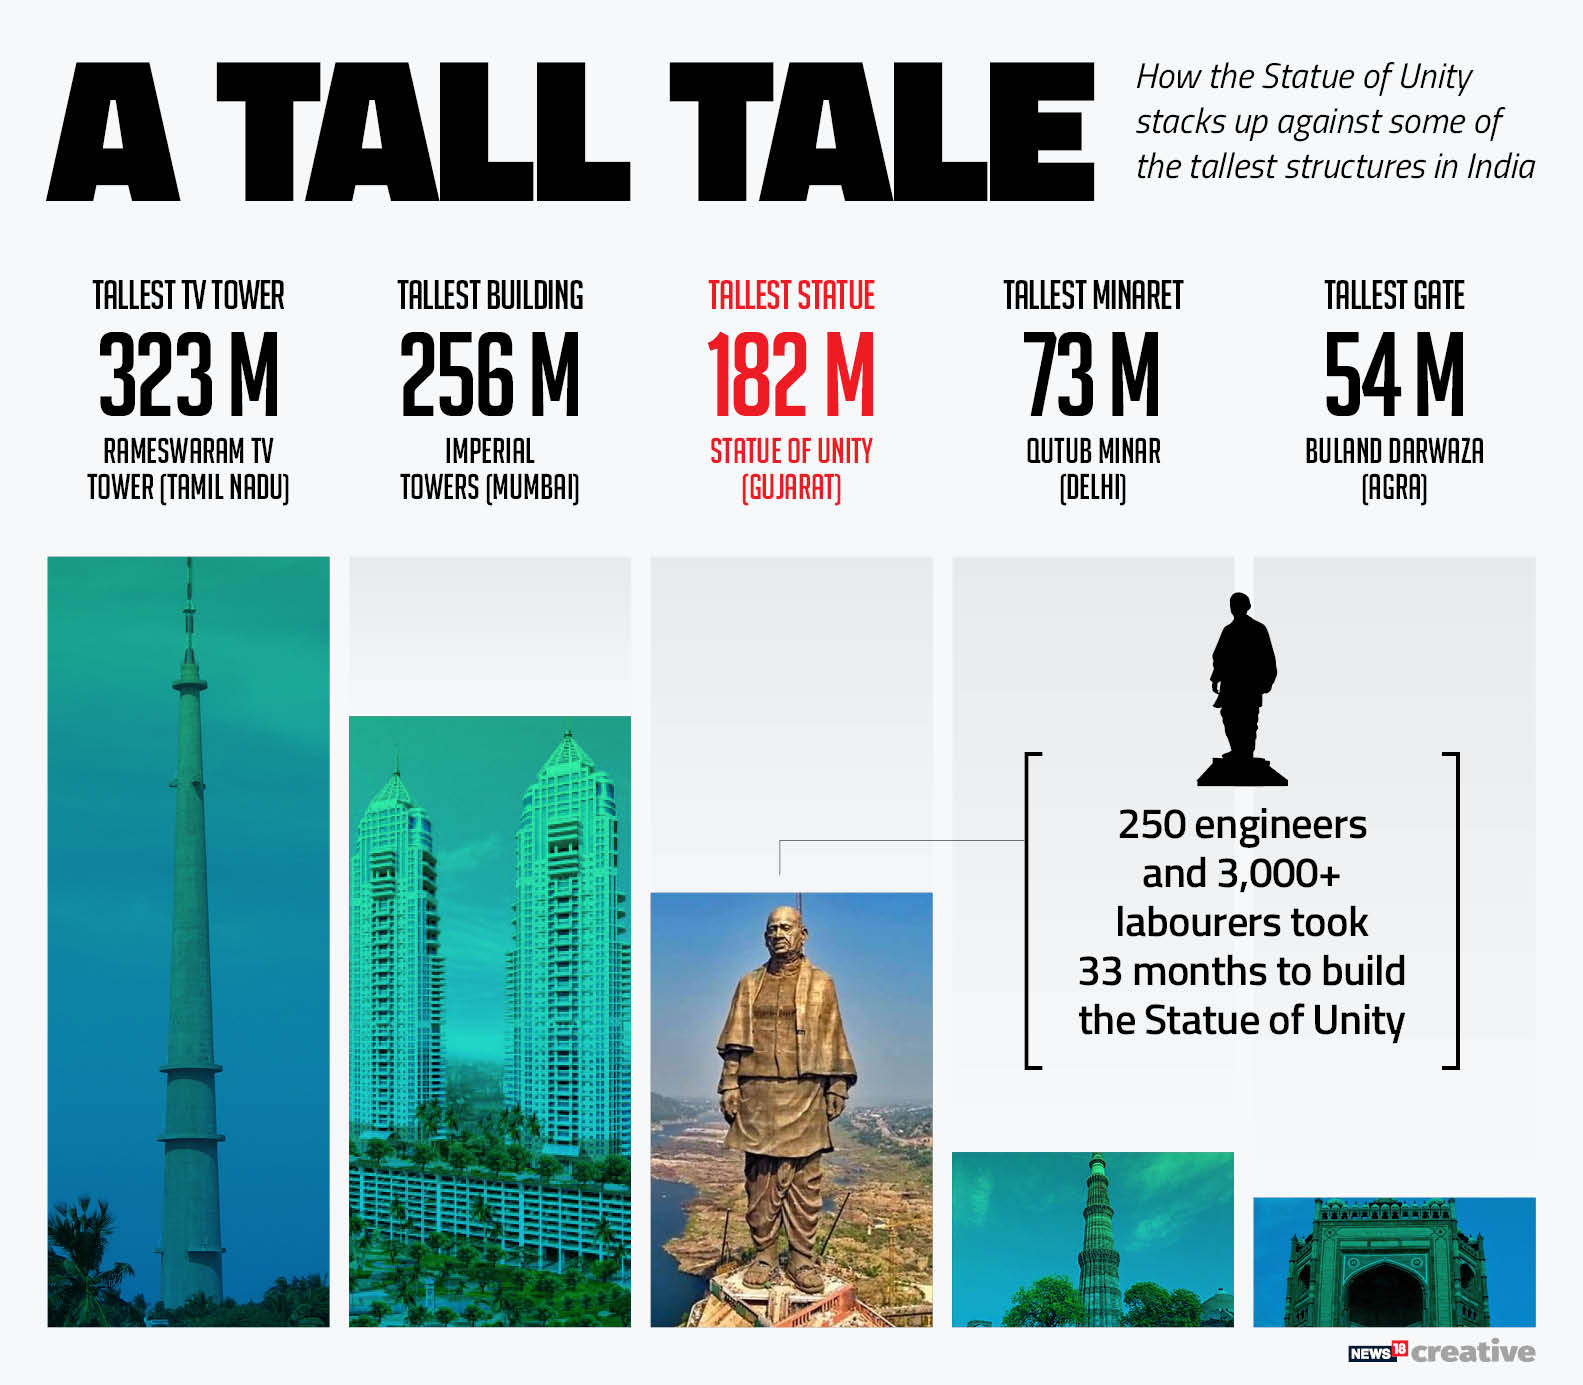 Statue of Unity vs other structures